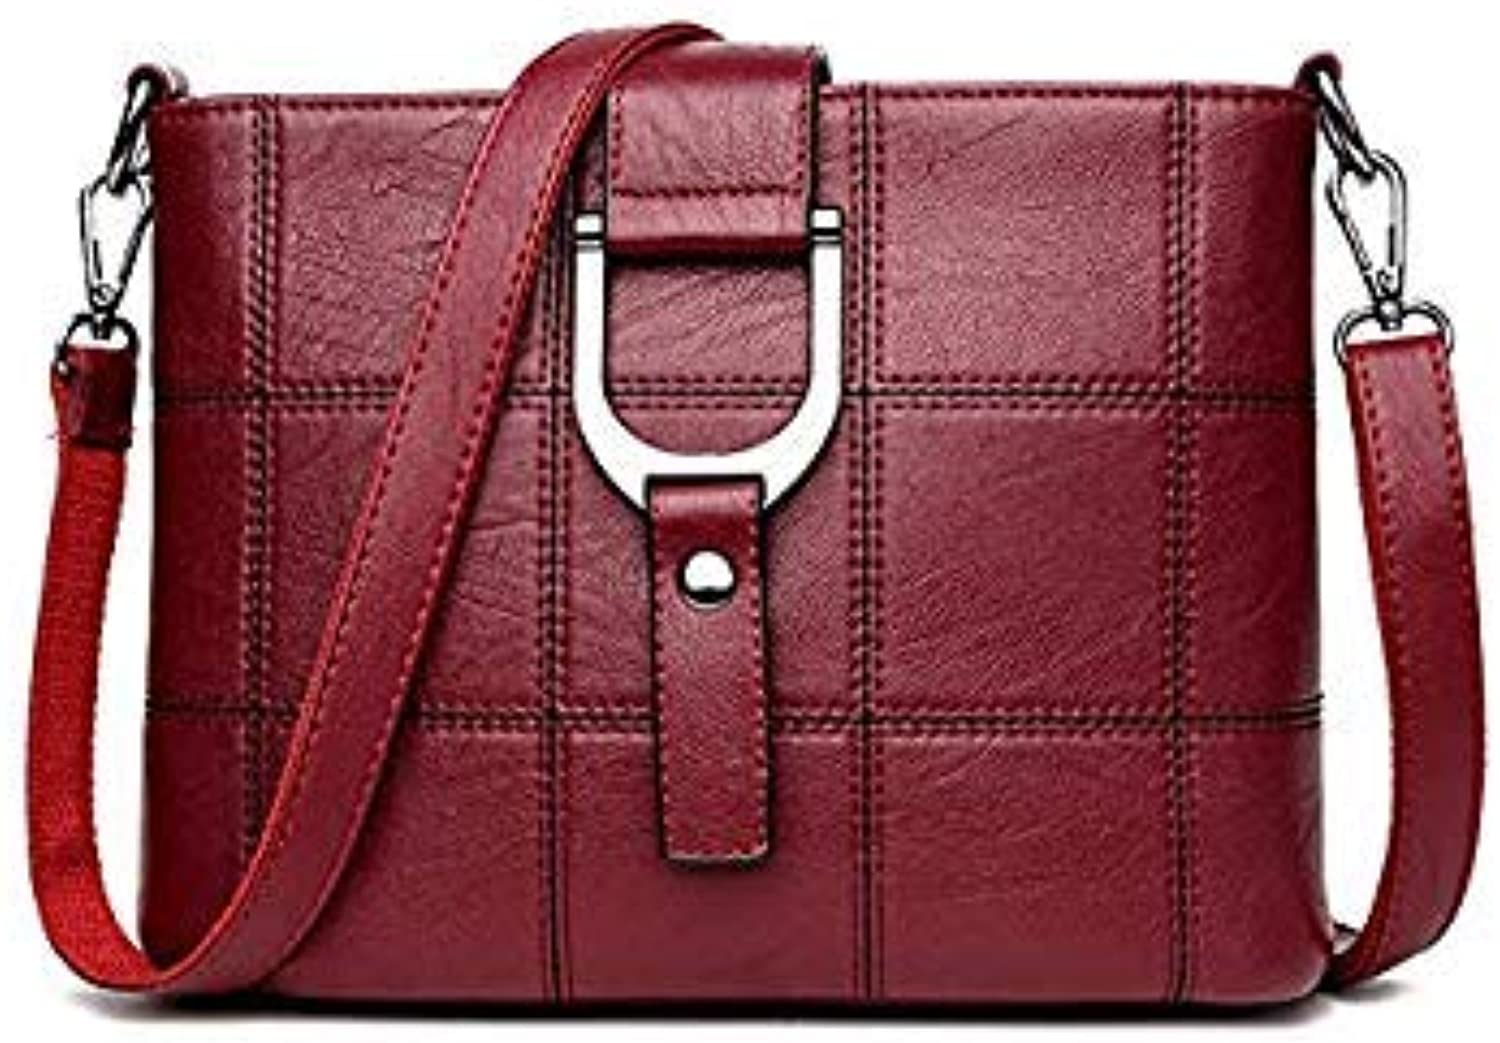 Bloomerang Luxury Women Messenger Bags Designer Woman Bag Brand Leather Shoulder Bags Tote Bag sac a Main Femme Nouvelle Collection color Red